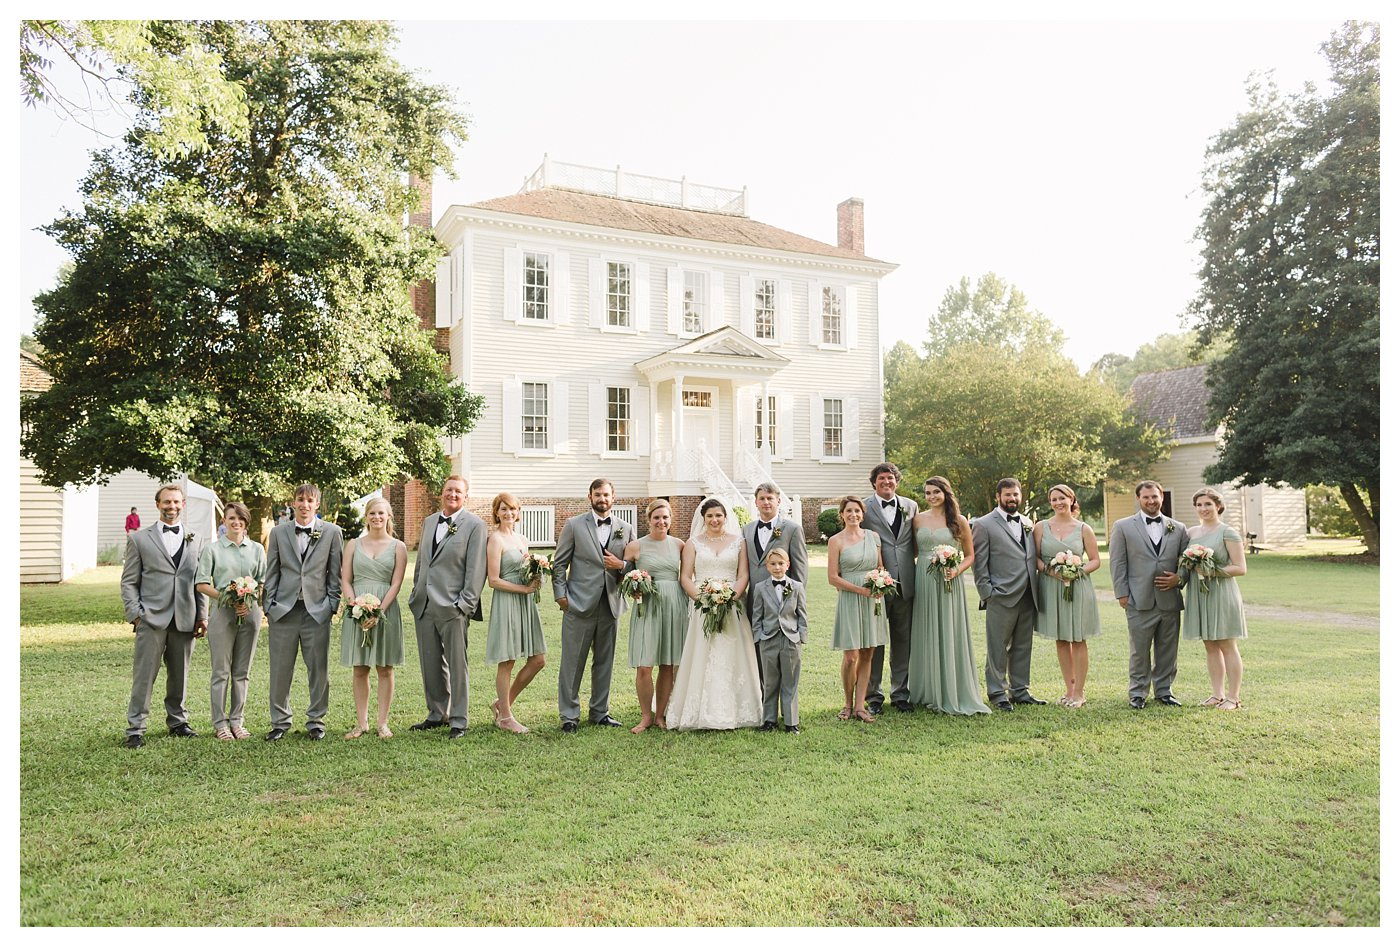 Historic_Hope_Plantation_Wedding_Photography_Sage_Summer_Outdoor_Windsor_NC_0033.jpg